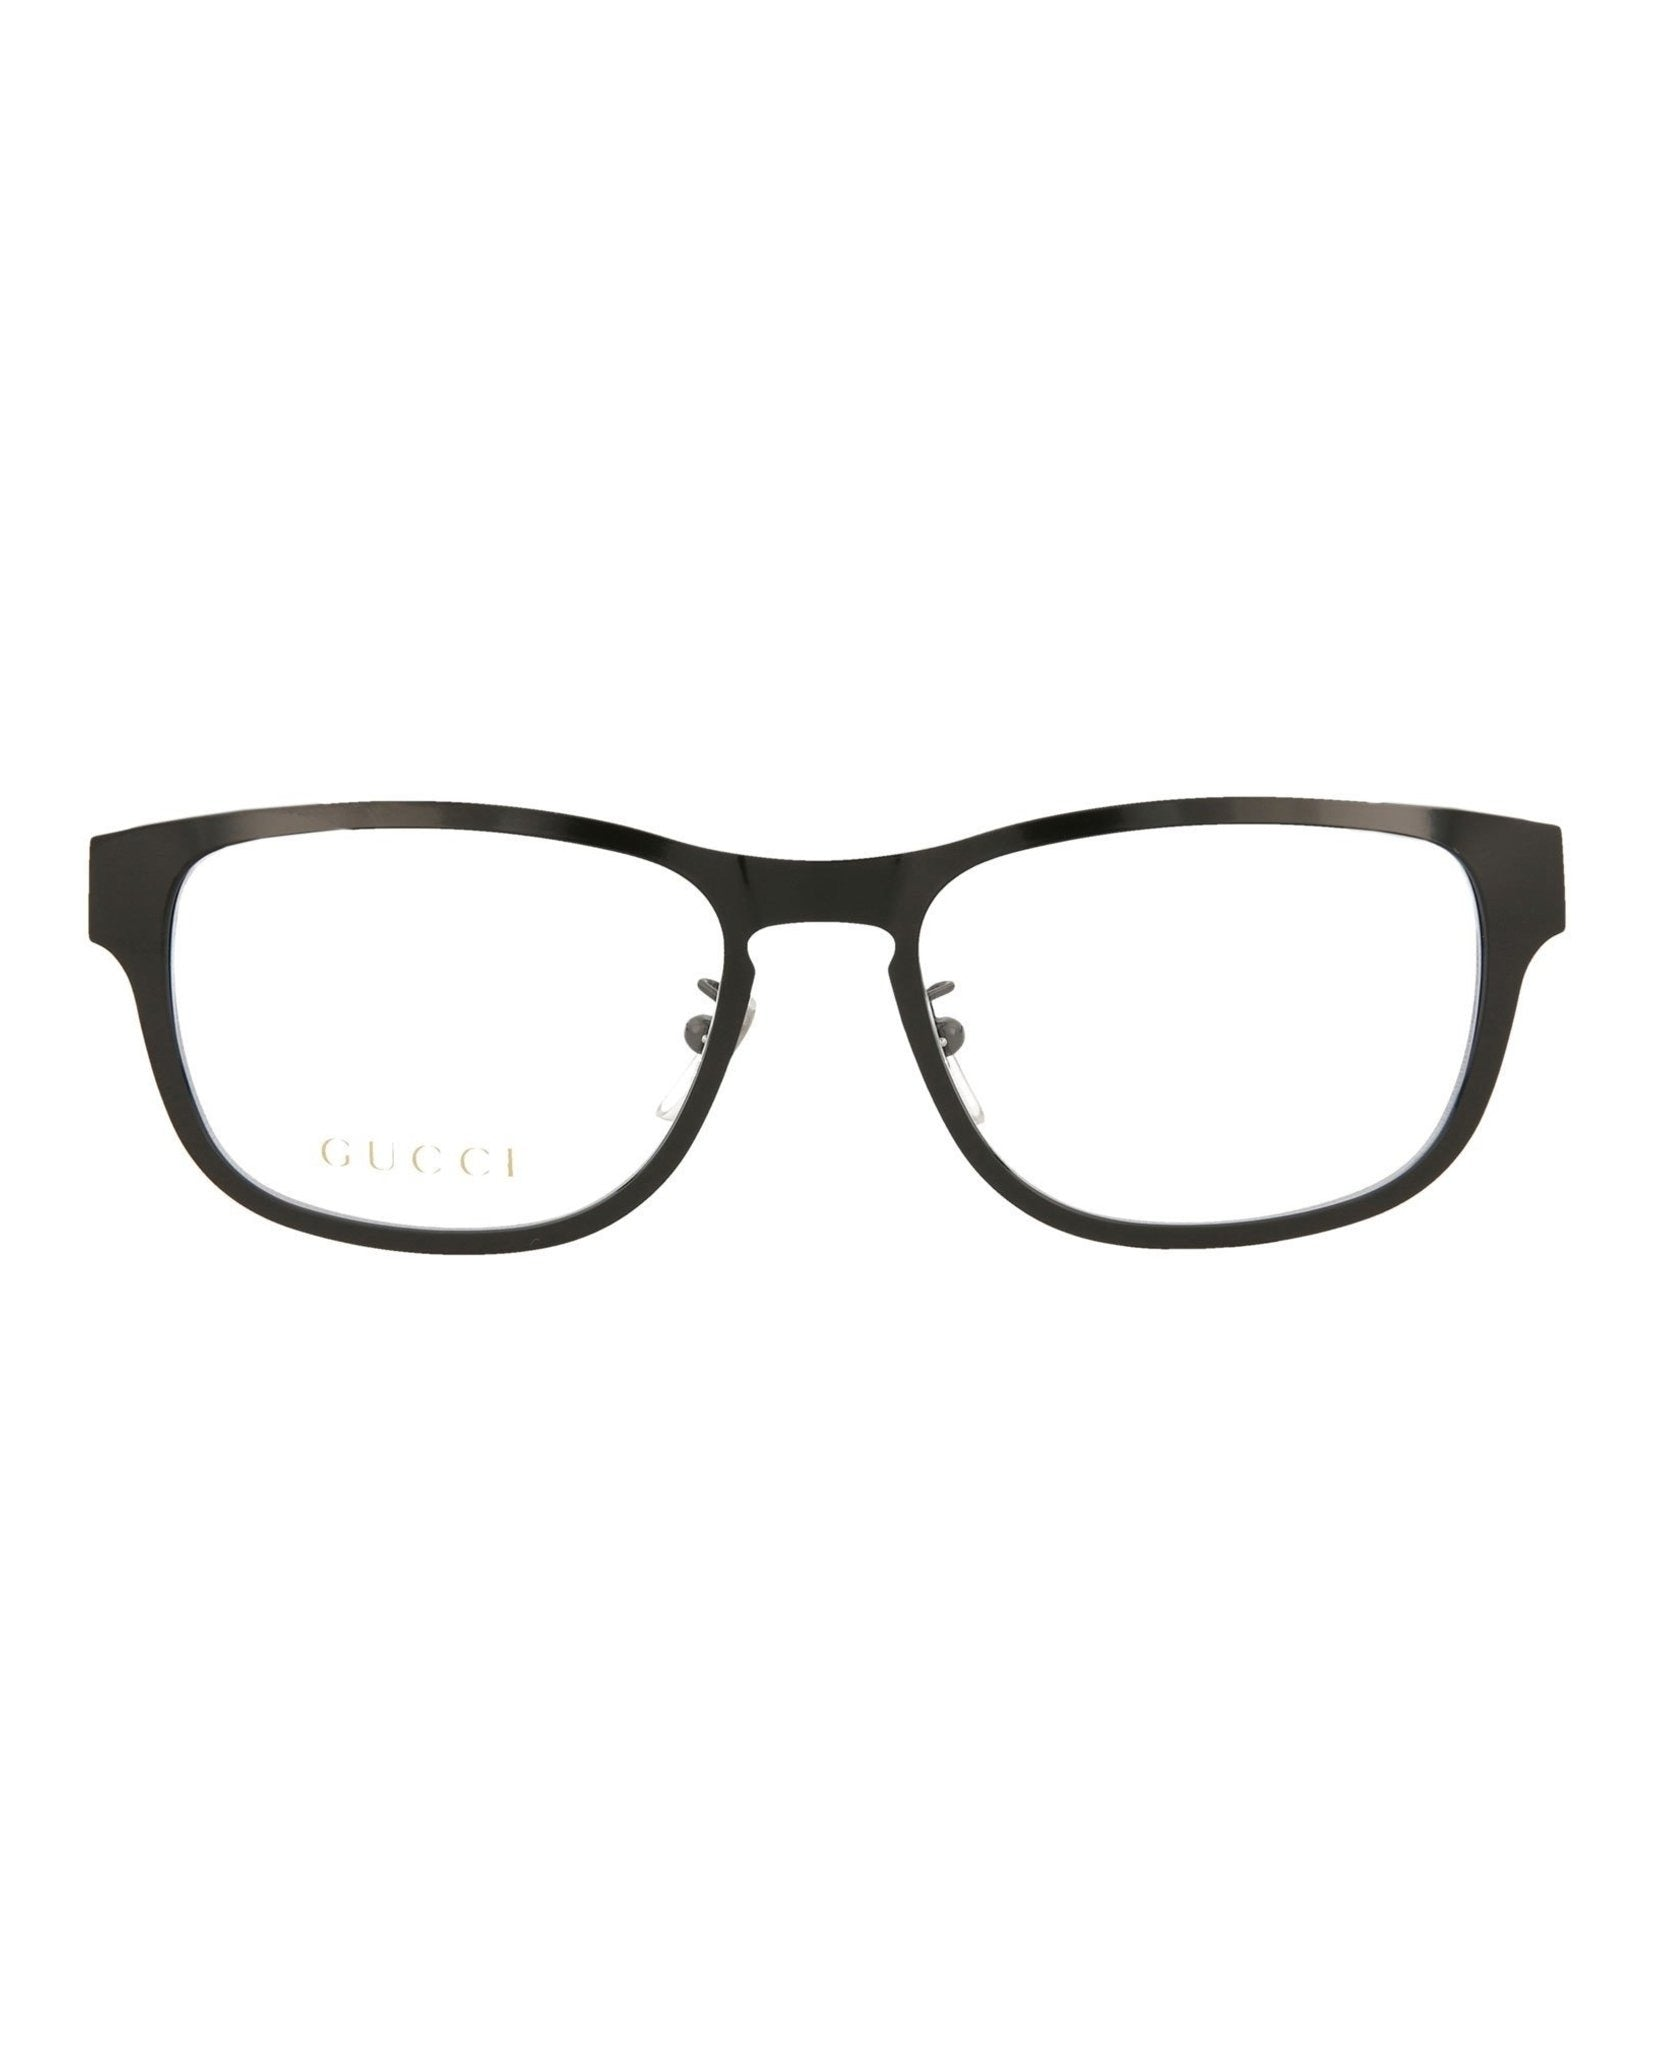 Gucci Round Optical Frames – MadaLuxe Vault